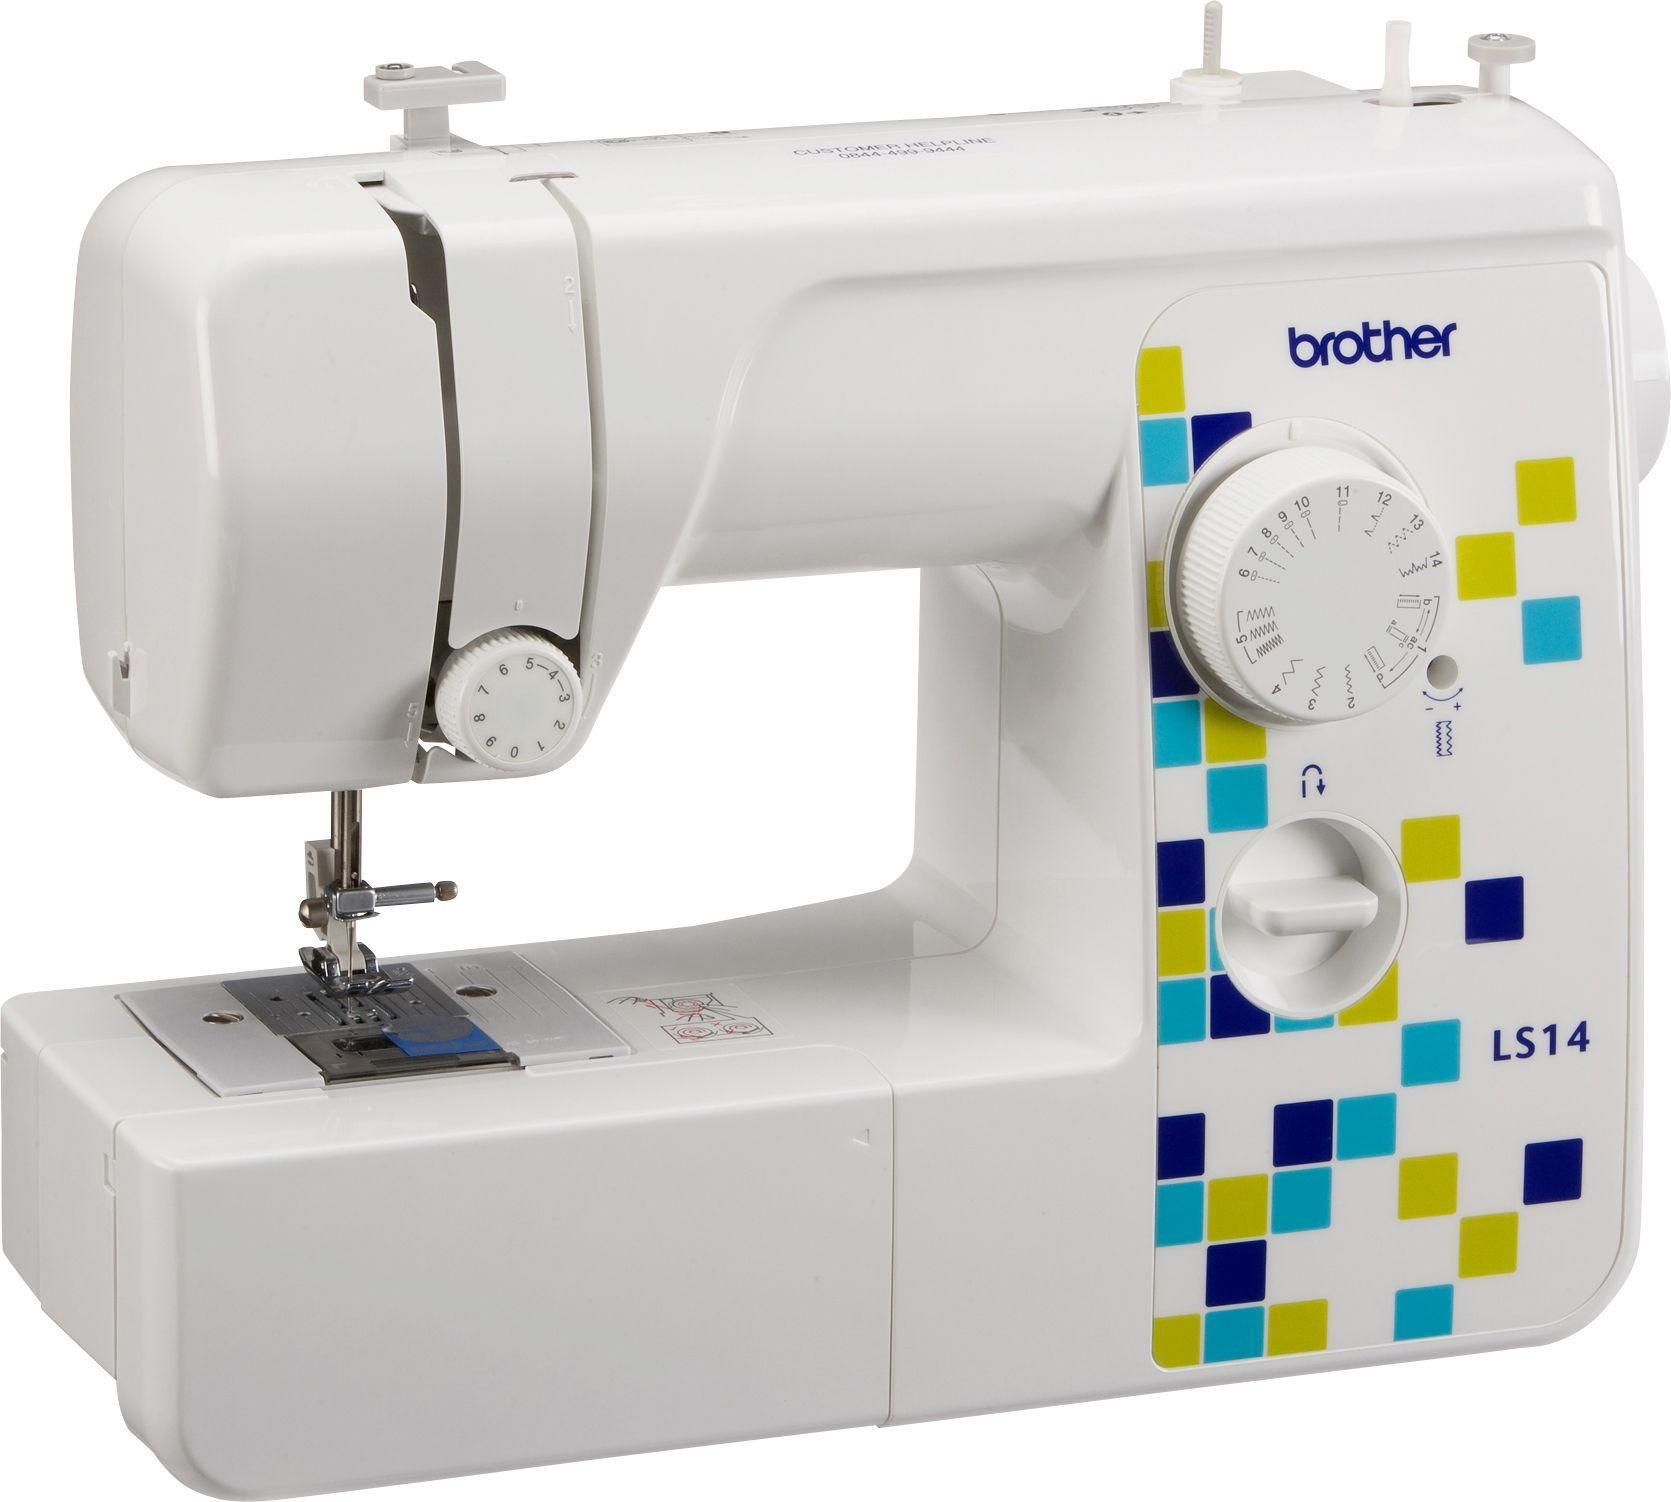 Brother - LS14 Manual Stitch Sewing Machine - White lowest price